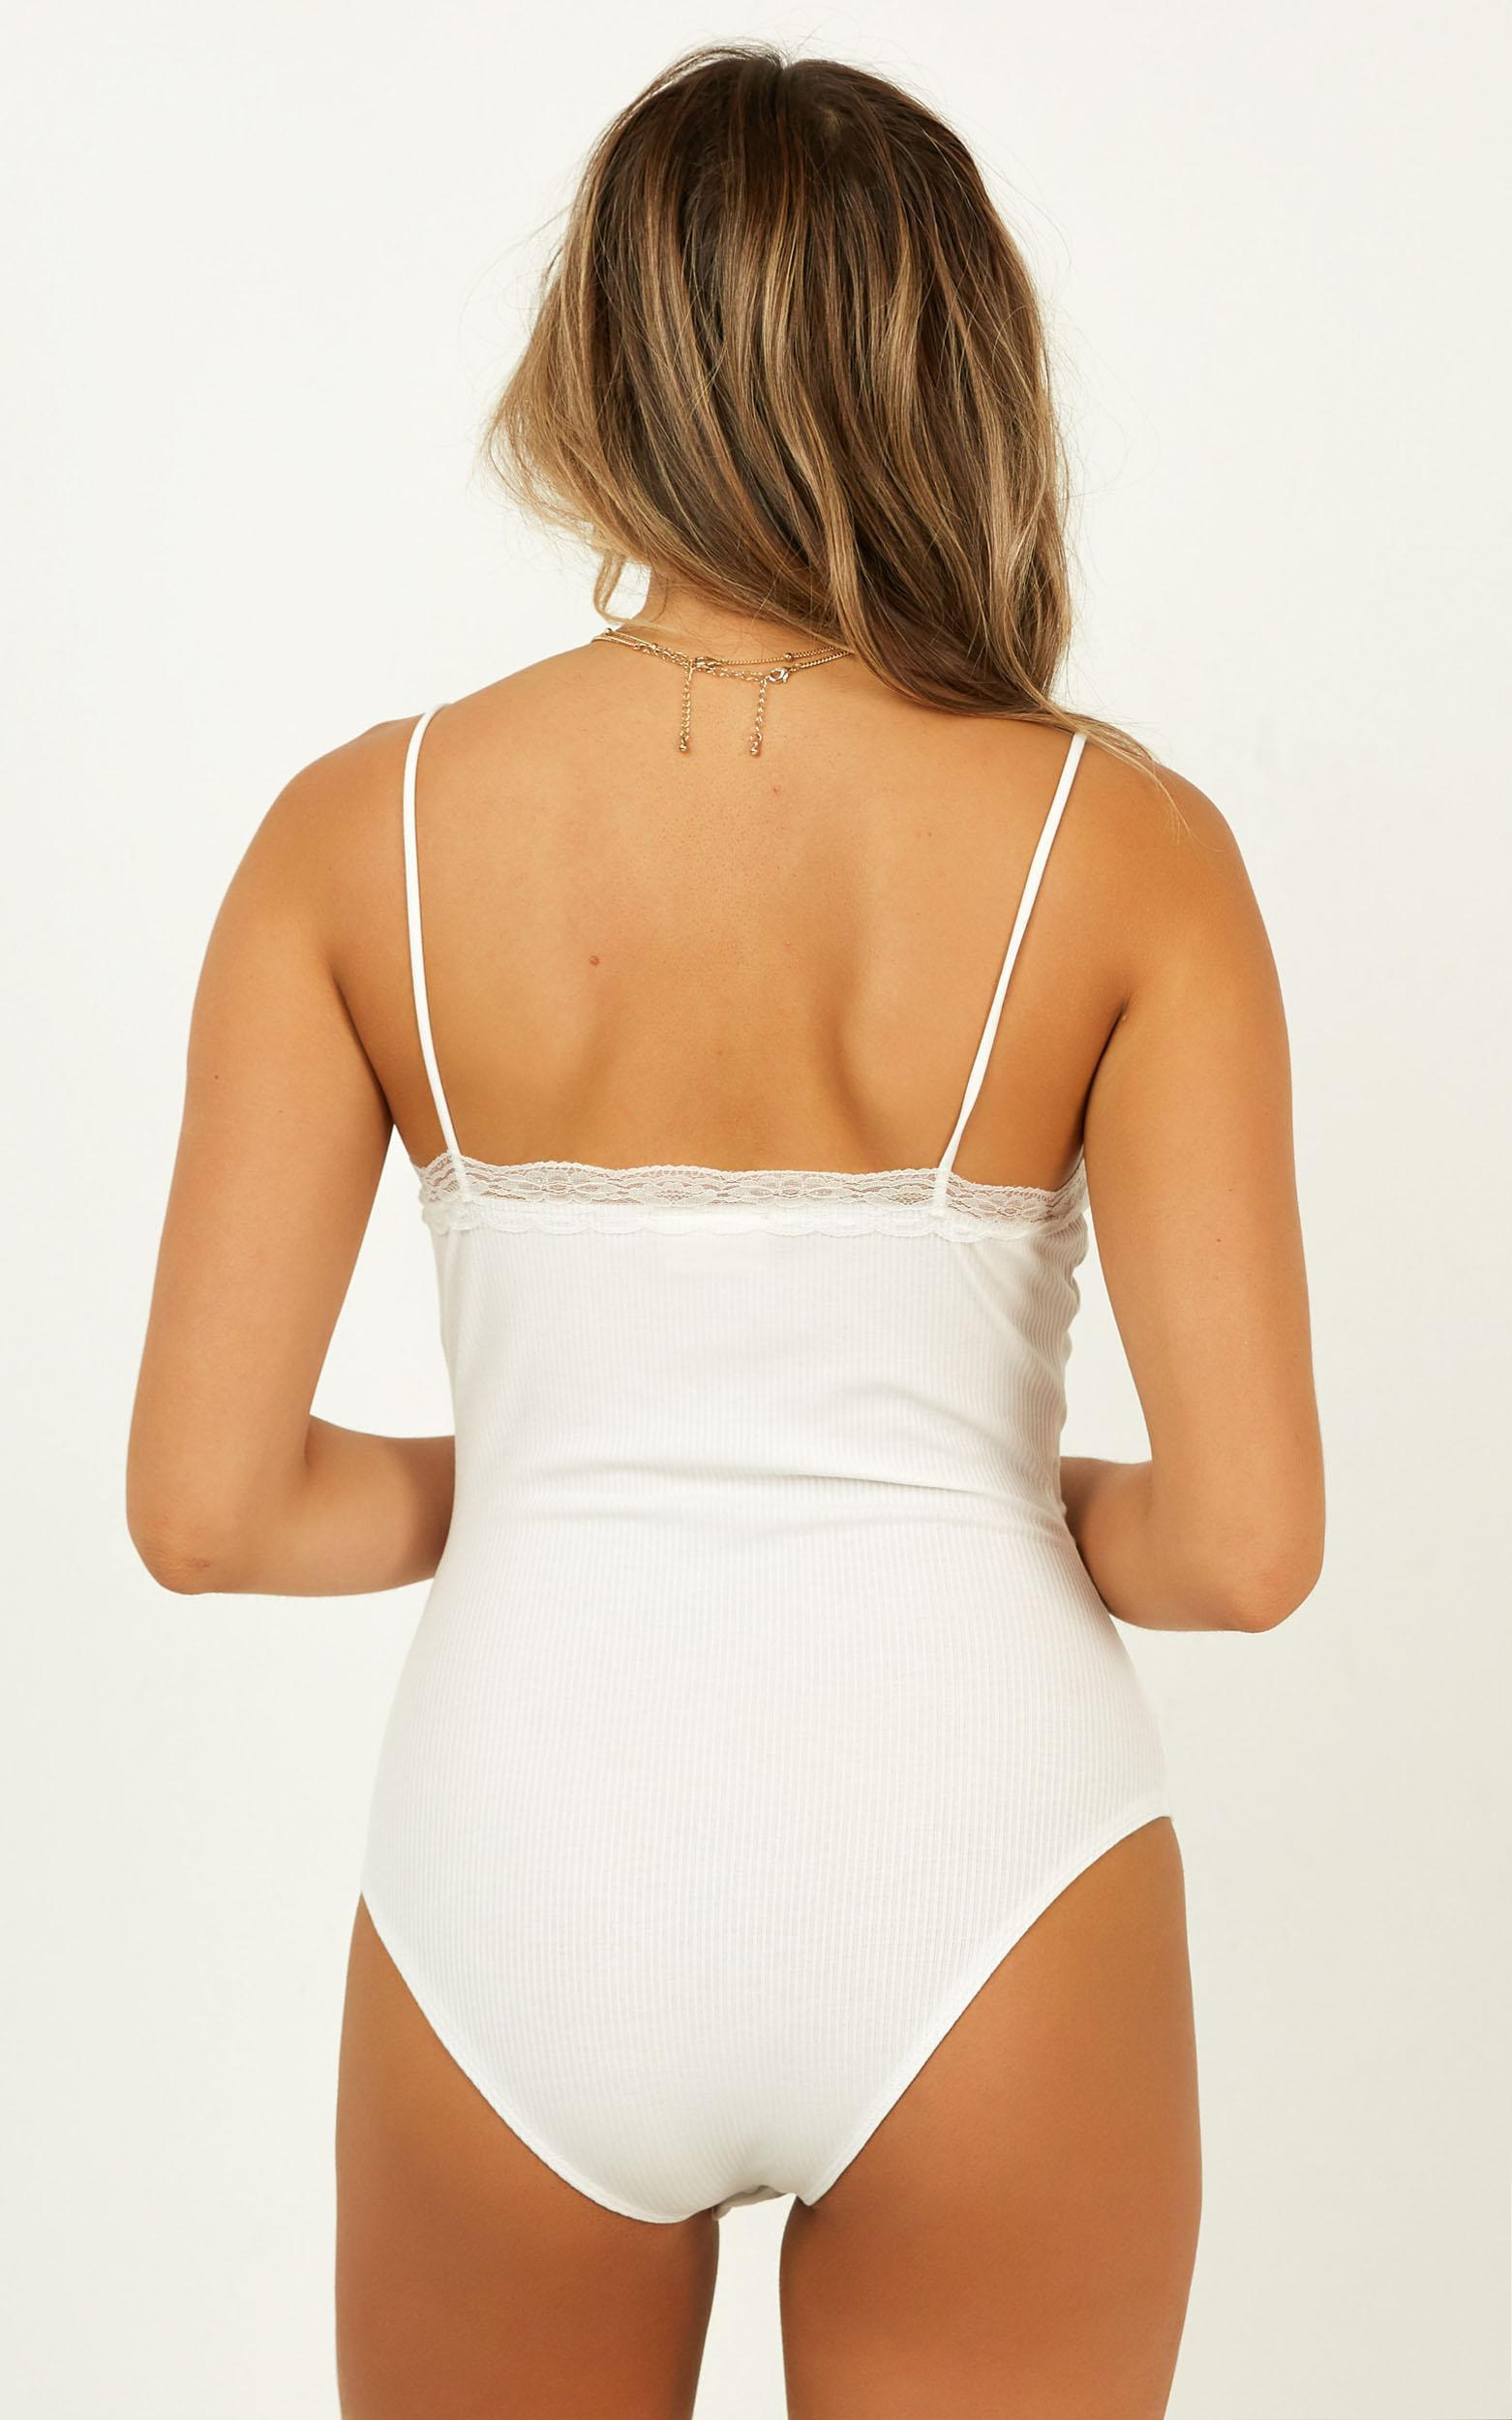 On The Cover Bodysuit In white - 18 (XXXL), White, hi-res image number null